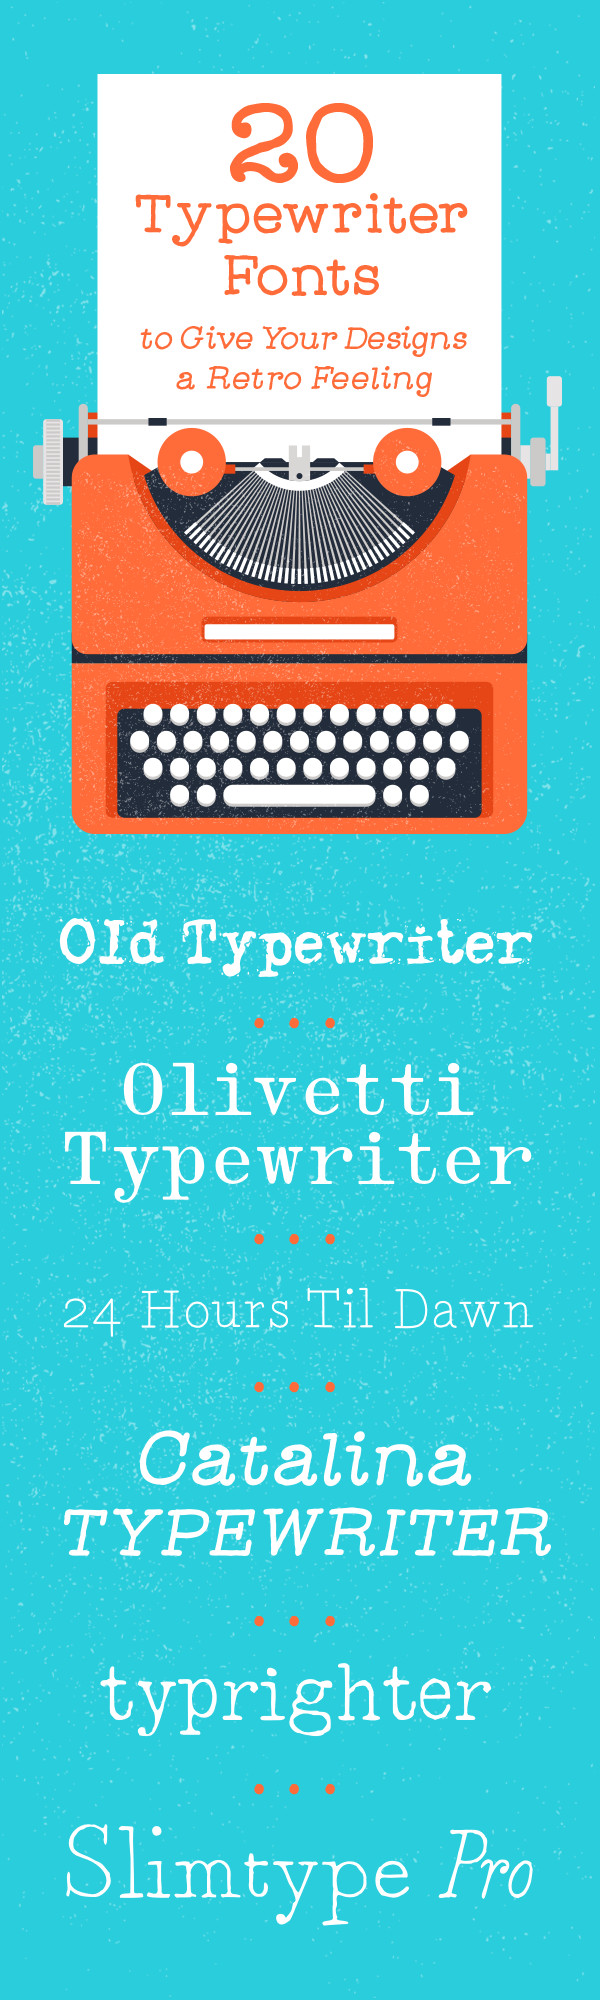 20-Typewriter-Fonts-Pinterest